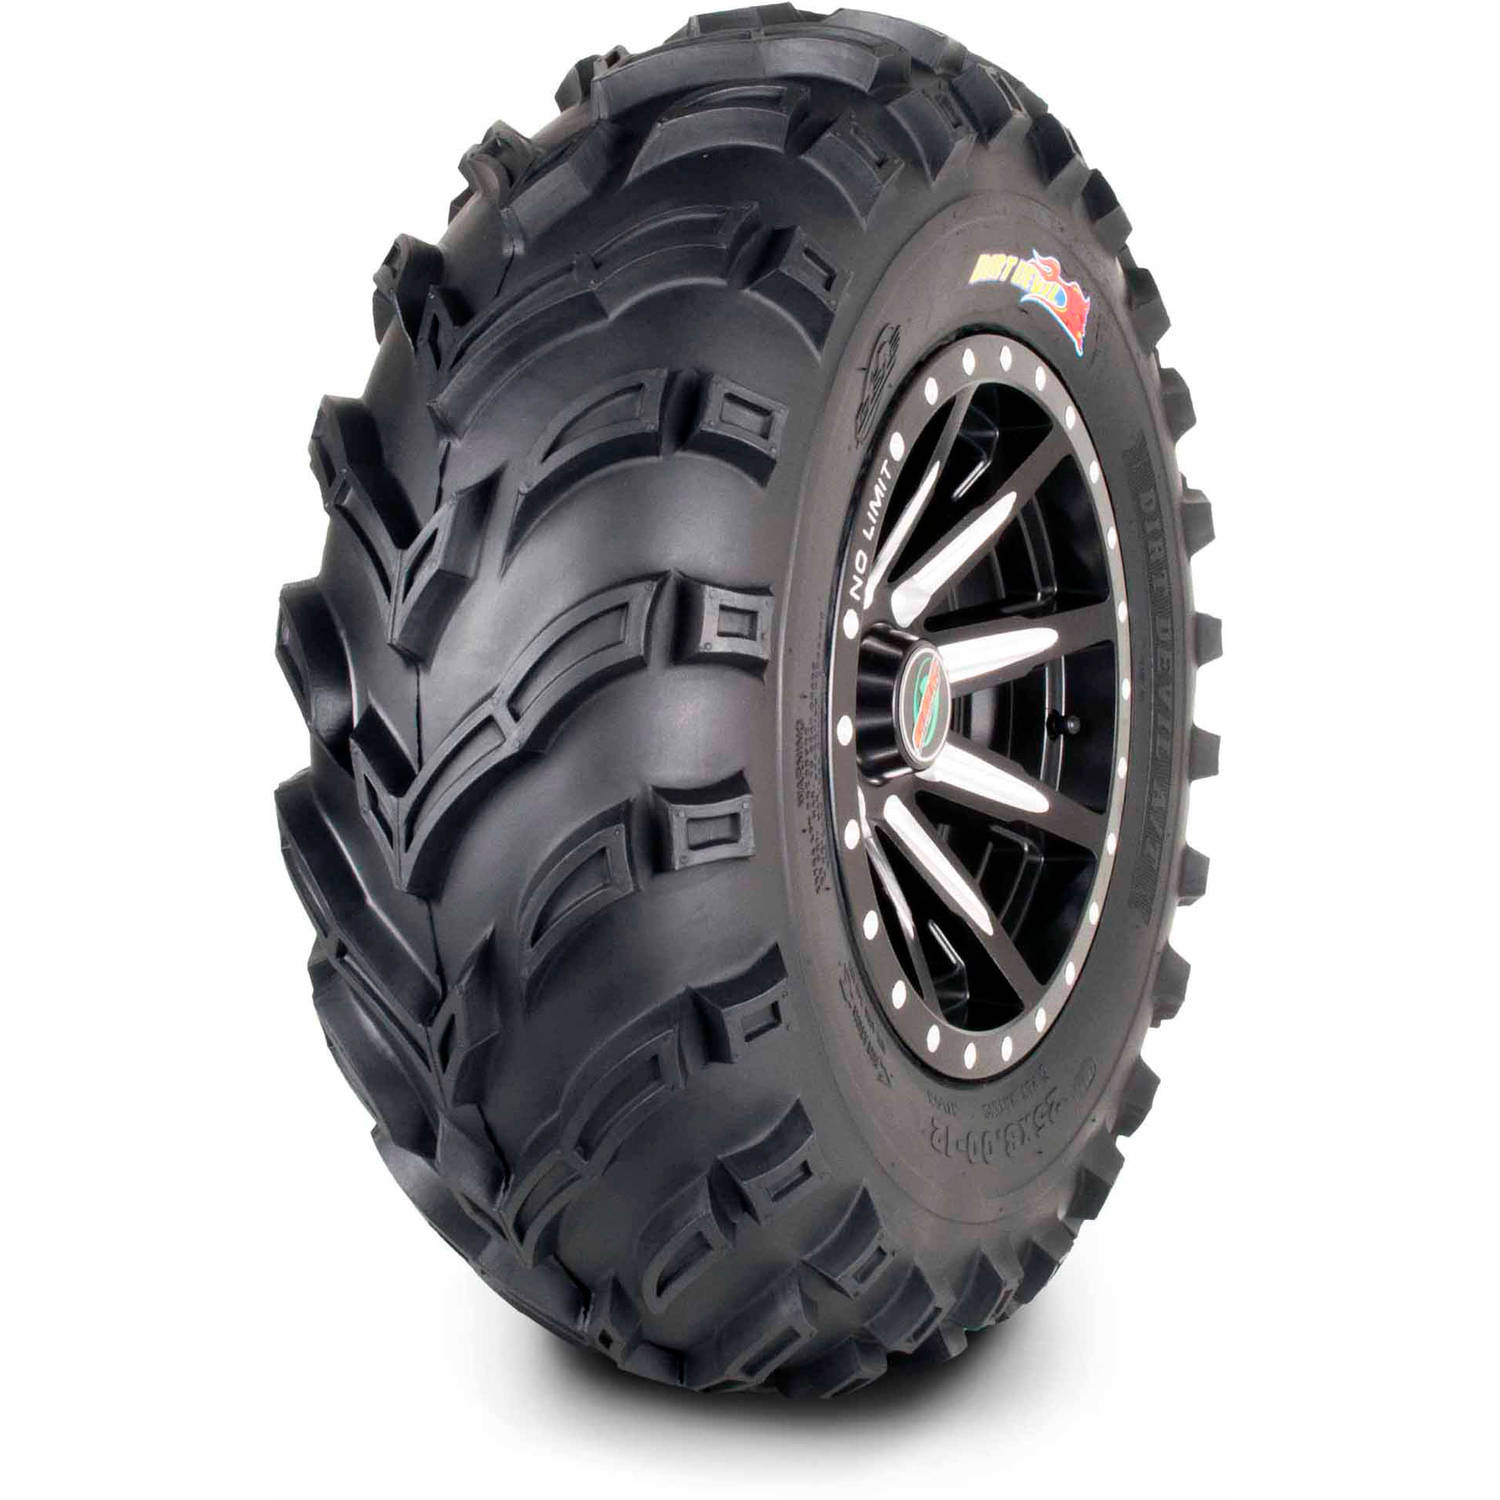 GBC Motorsports Dirt Devil 24X8.00-11 6 Ply ATV/UTV Tire (Tire Only)